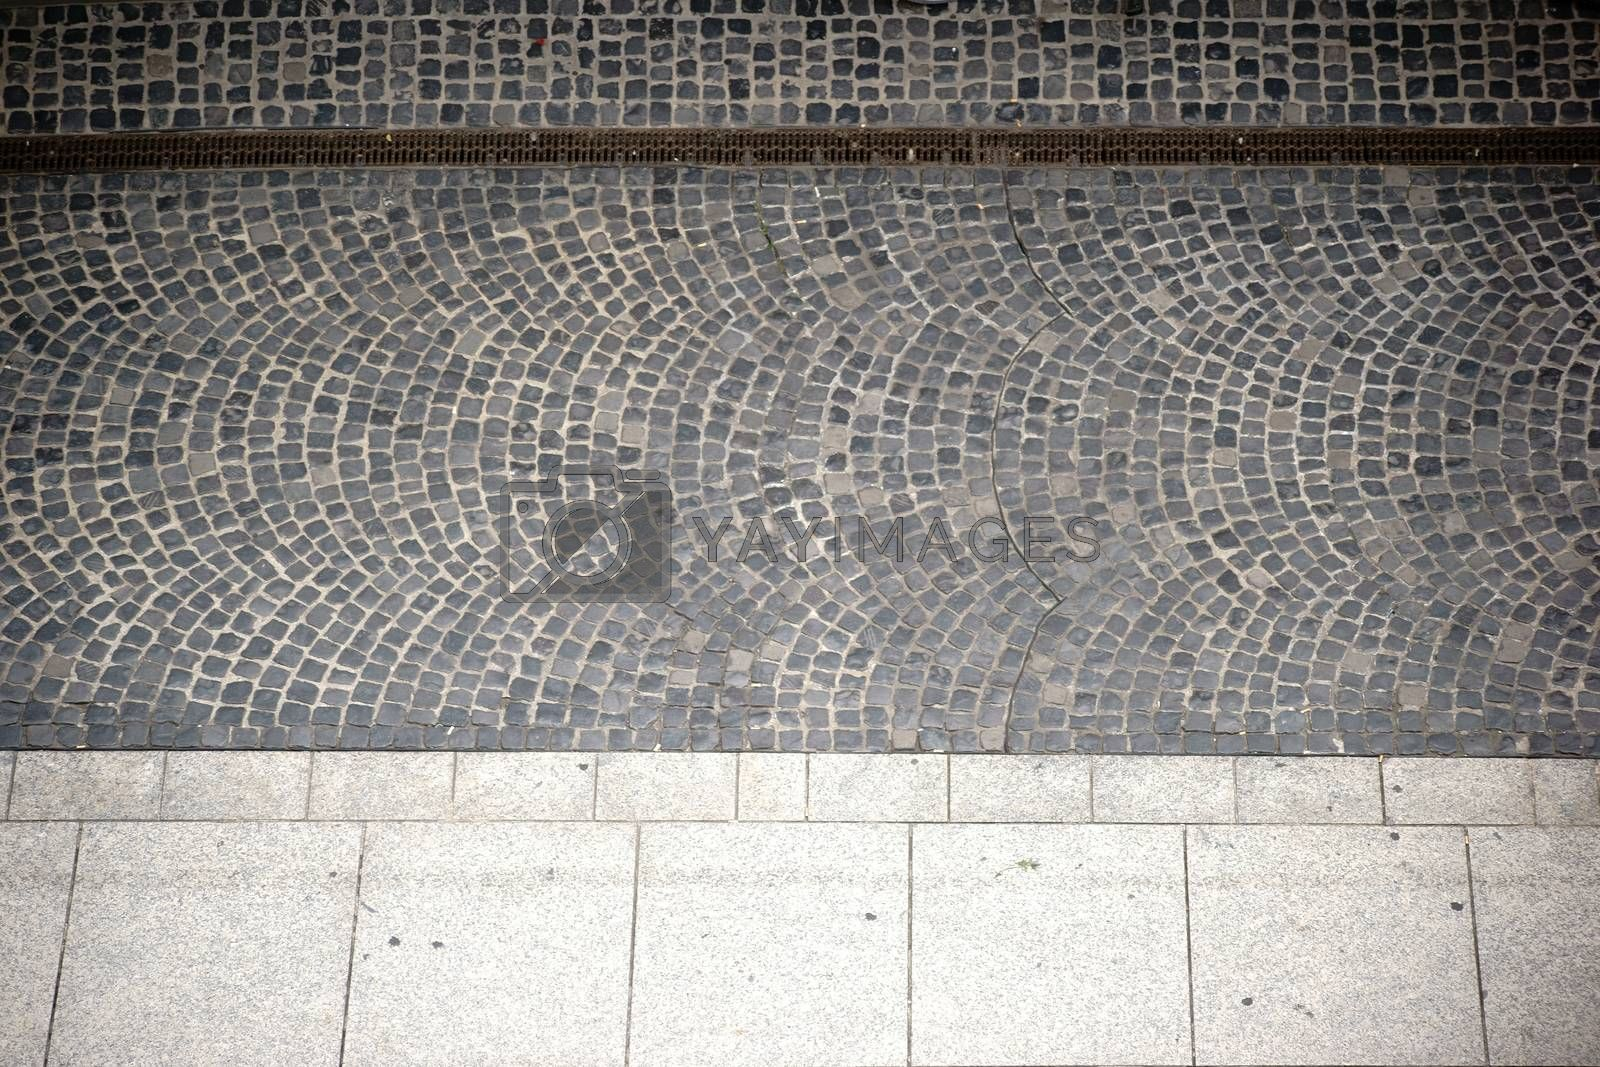 The Aerial view of a sidewalk with cobblestones and a gully.